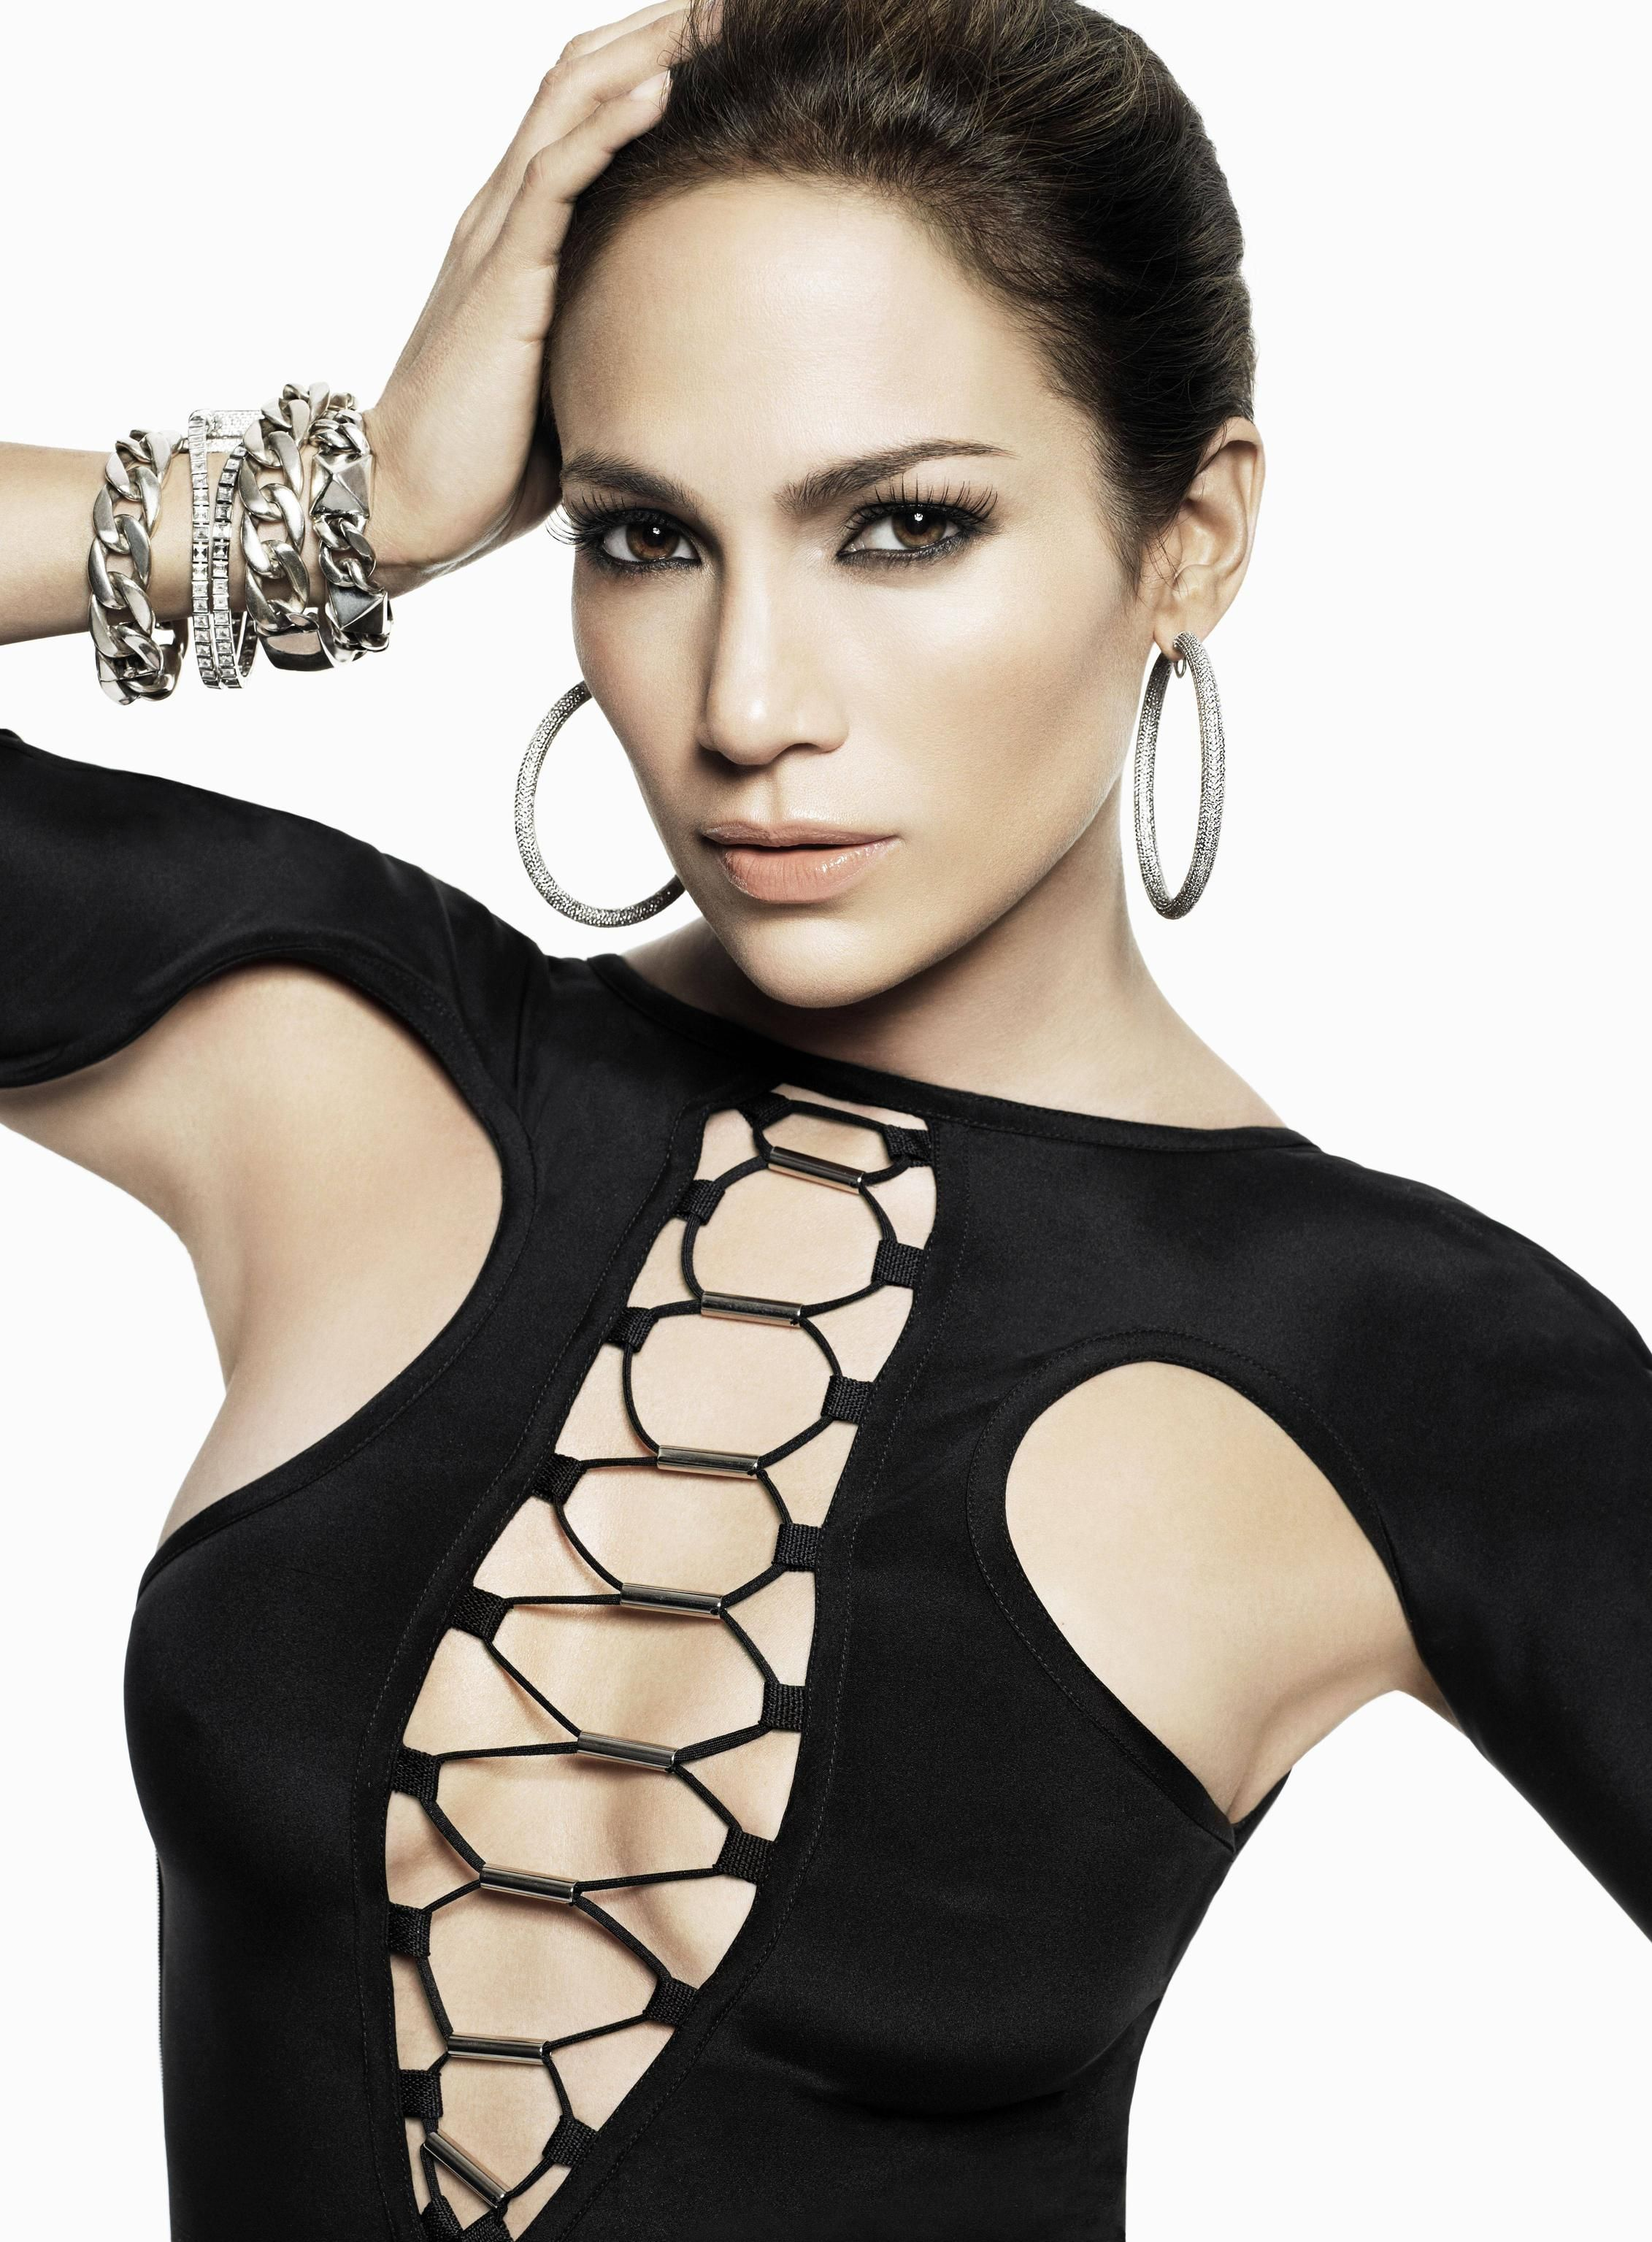 301f678c1505 Jennifer Lopez sexy fashion shot tied up front cut out black top big silver  bangles and hoop earrings